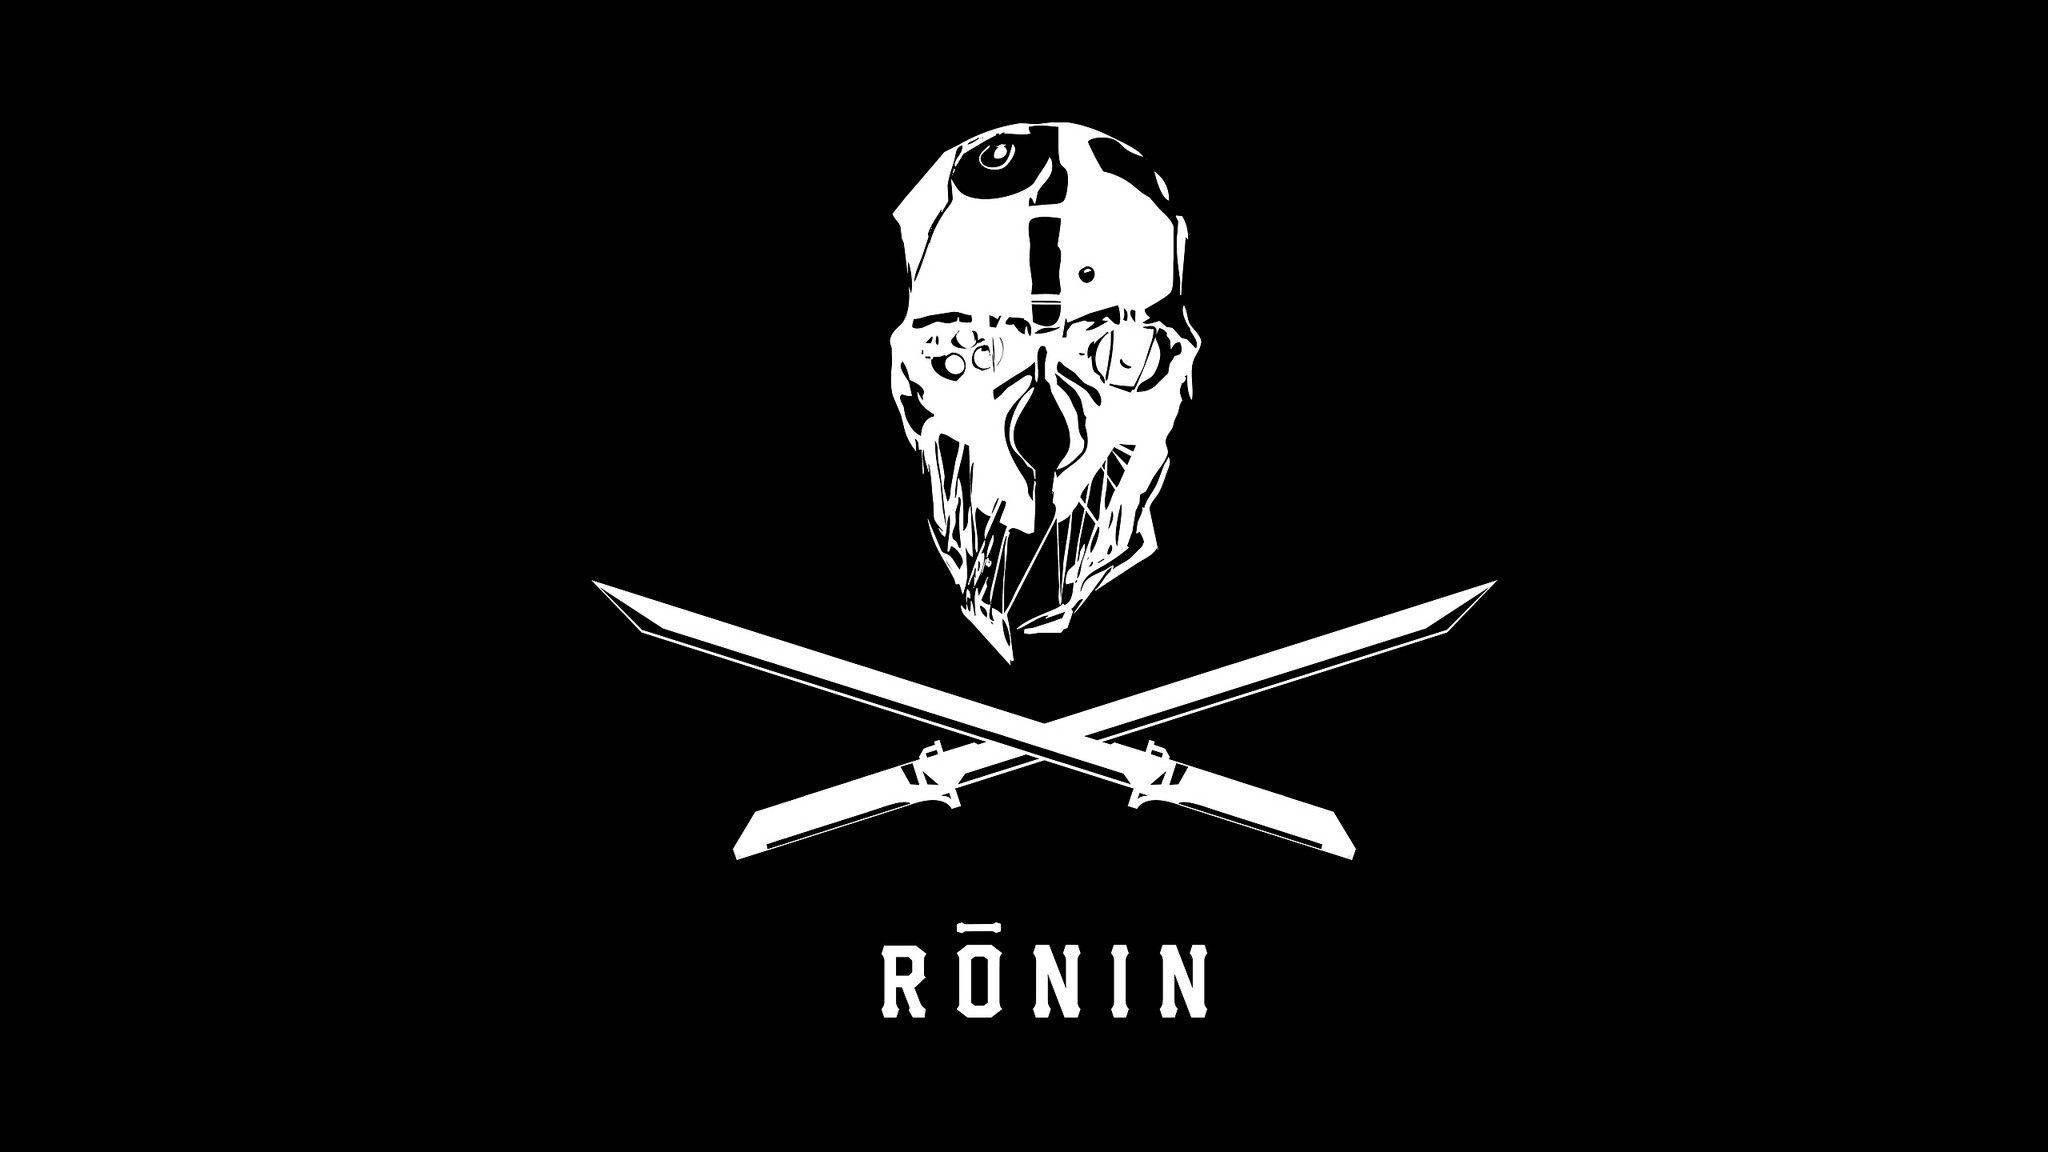 Ronin Wallpapers